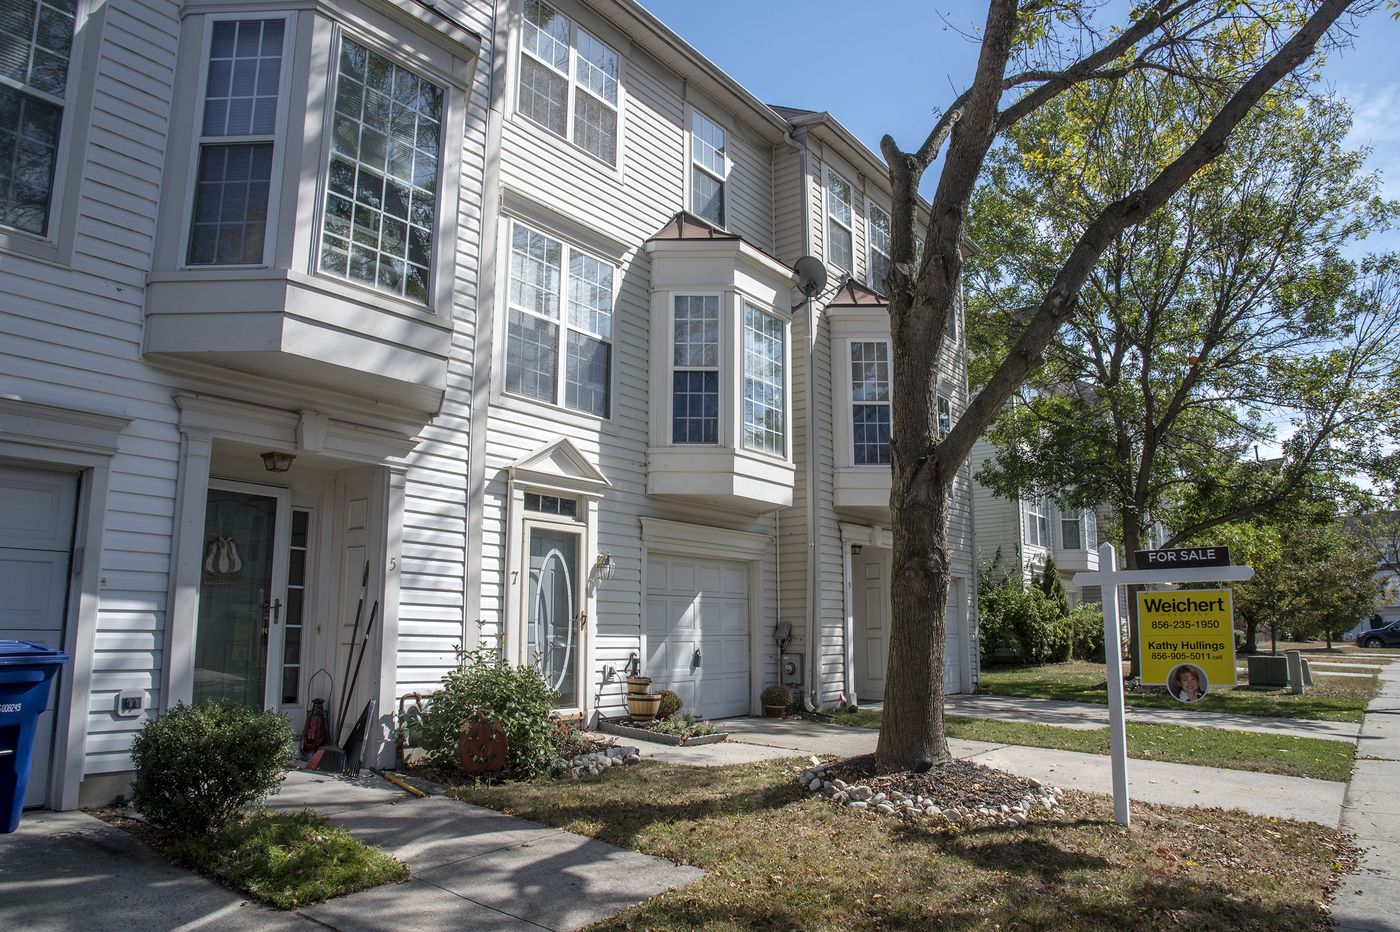 Burlco town, affordable-housing advocates reach truce in court battle